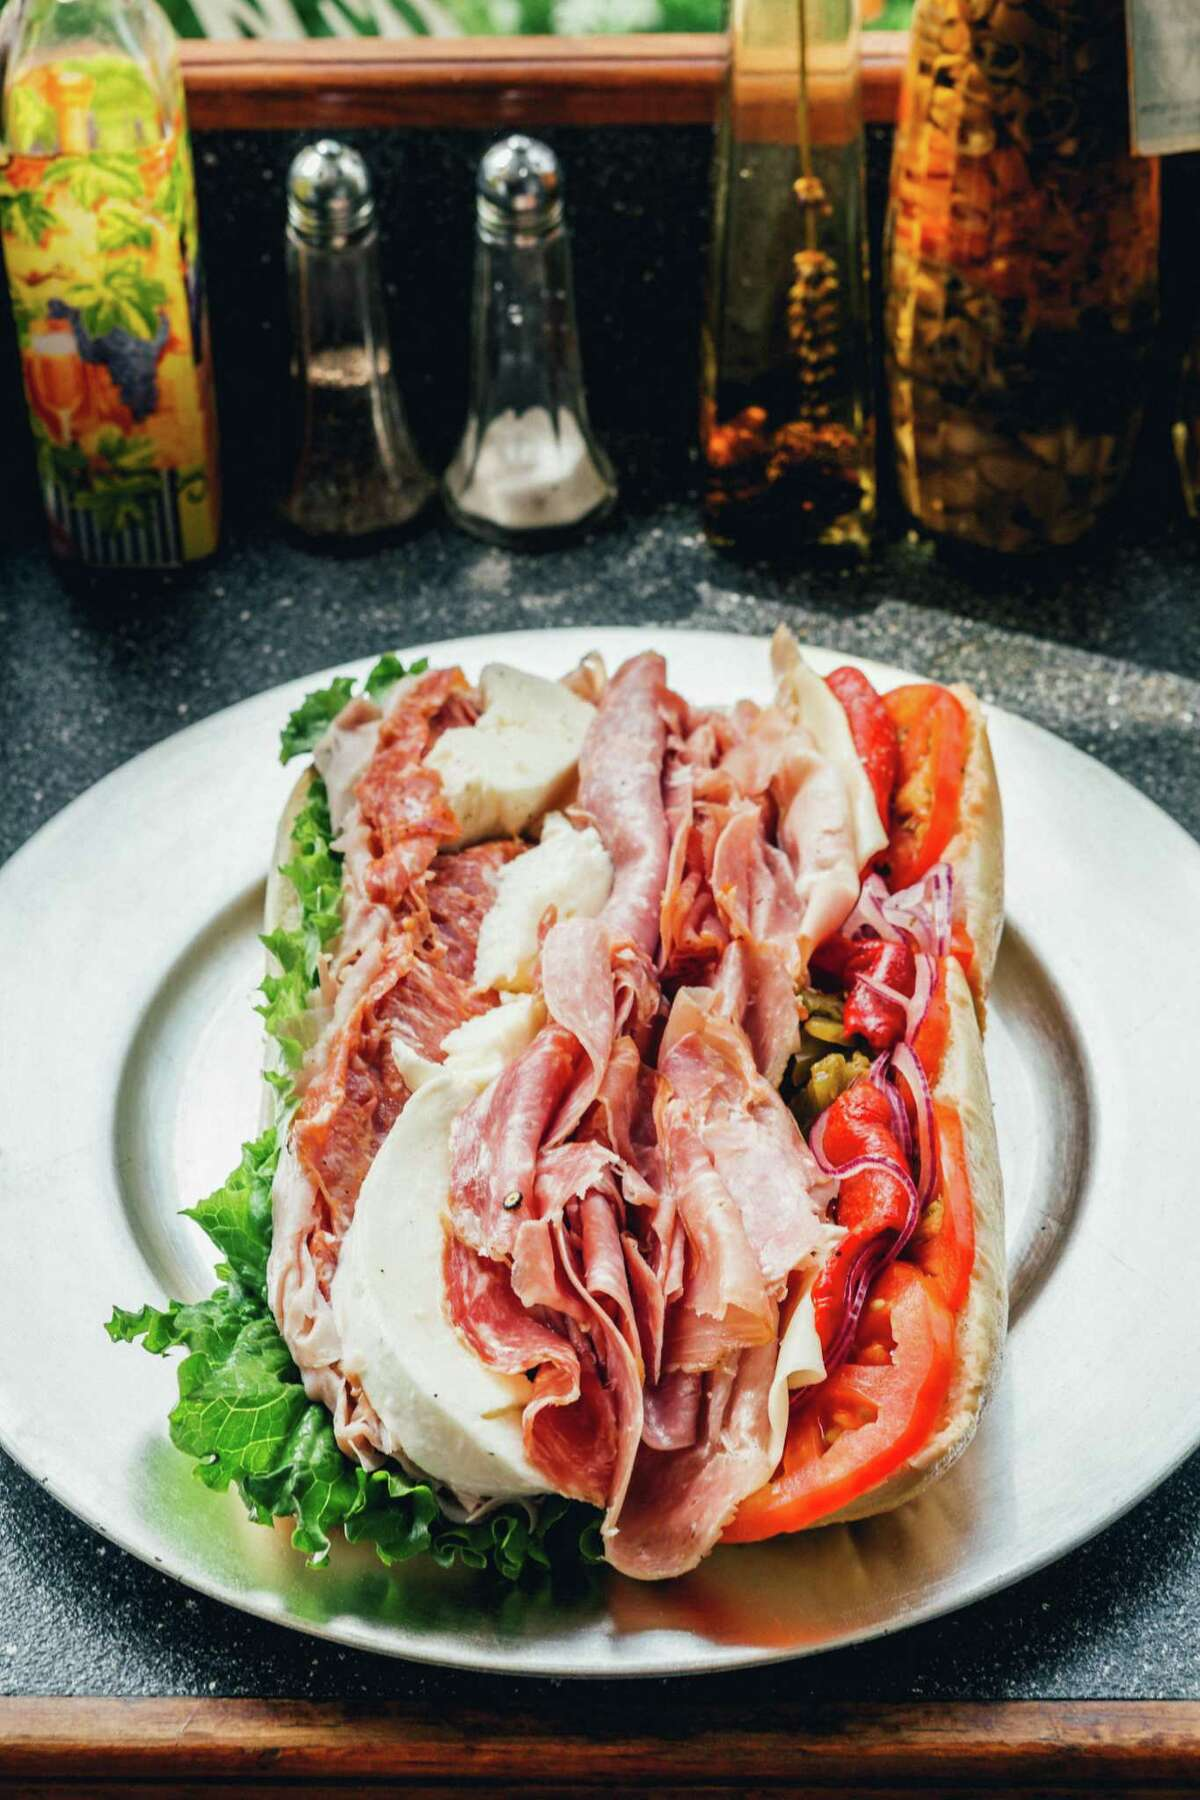 The Vito Corleone, otherwise known as the Godfather Sandwich, at Executive Corner Deli Catering in Greenwich.